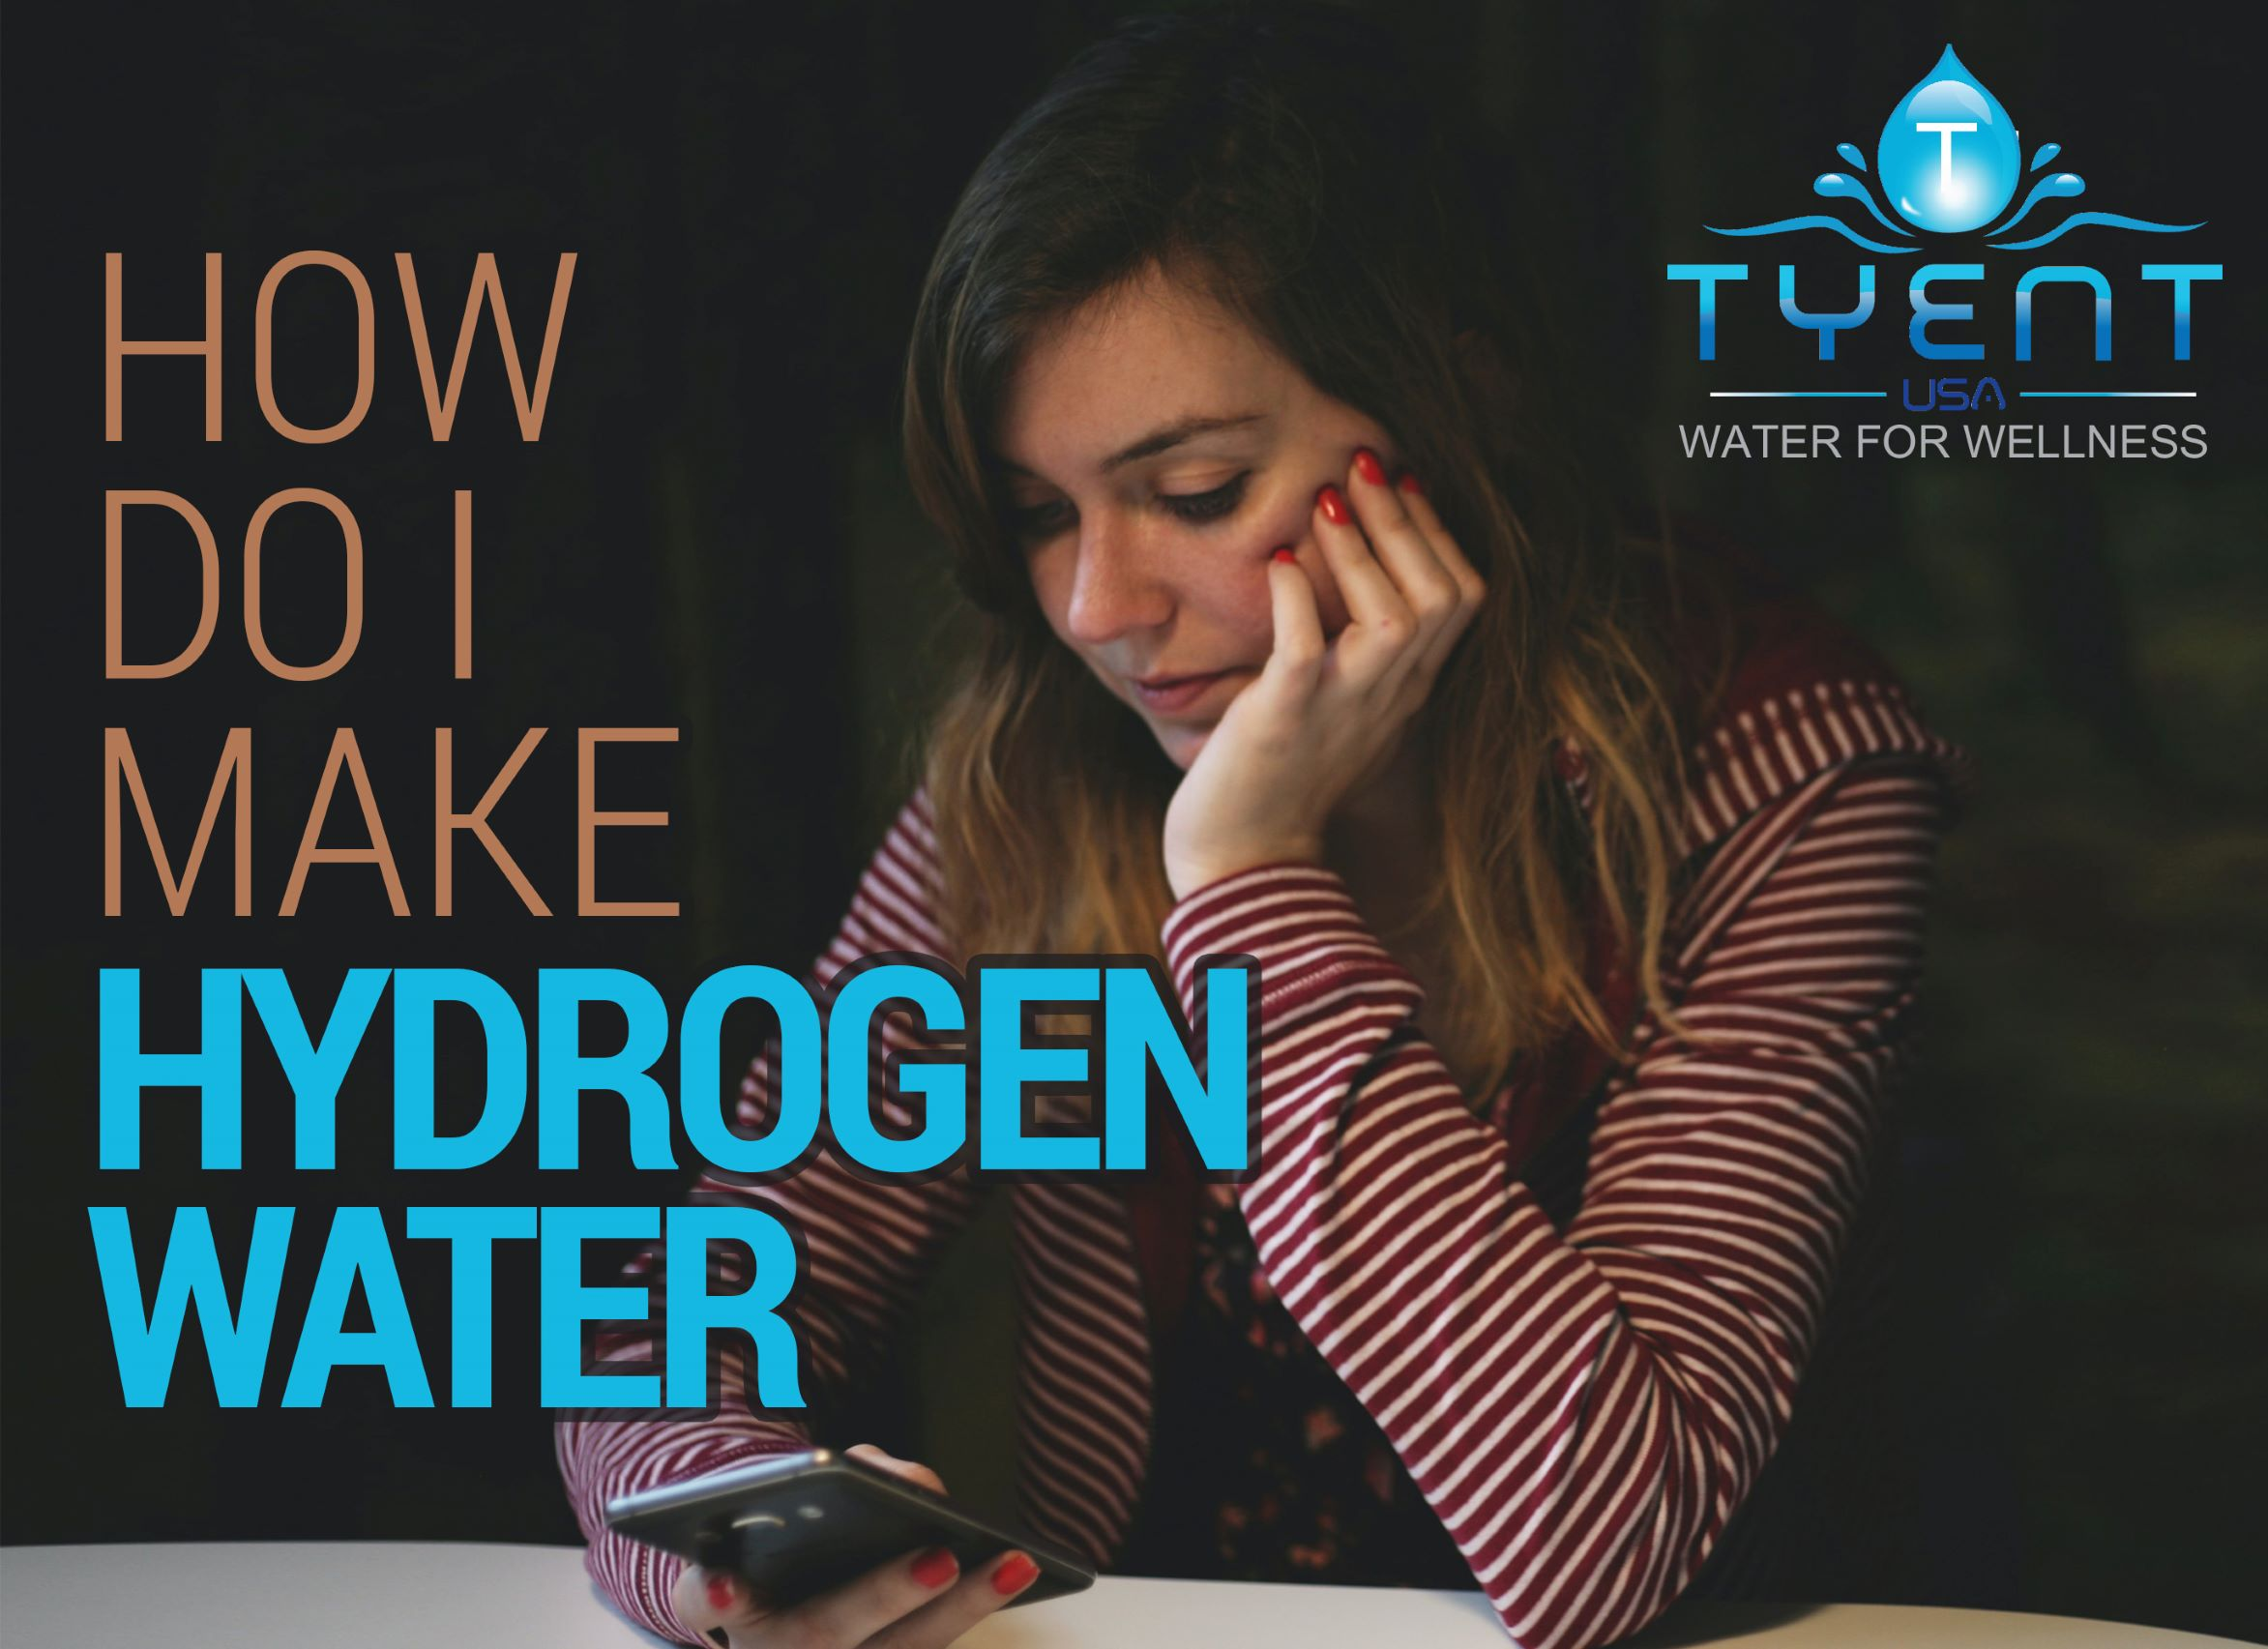 How Do I Make Hydrogen Water?